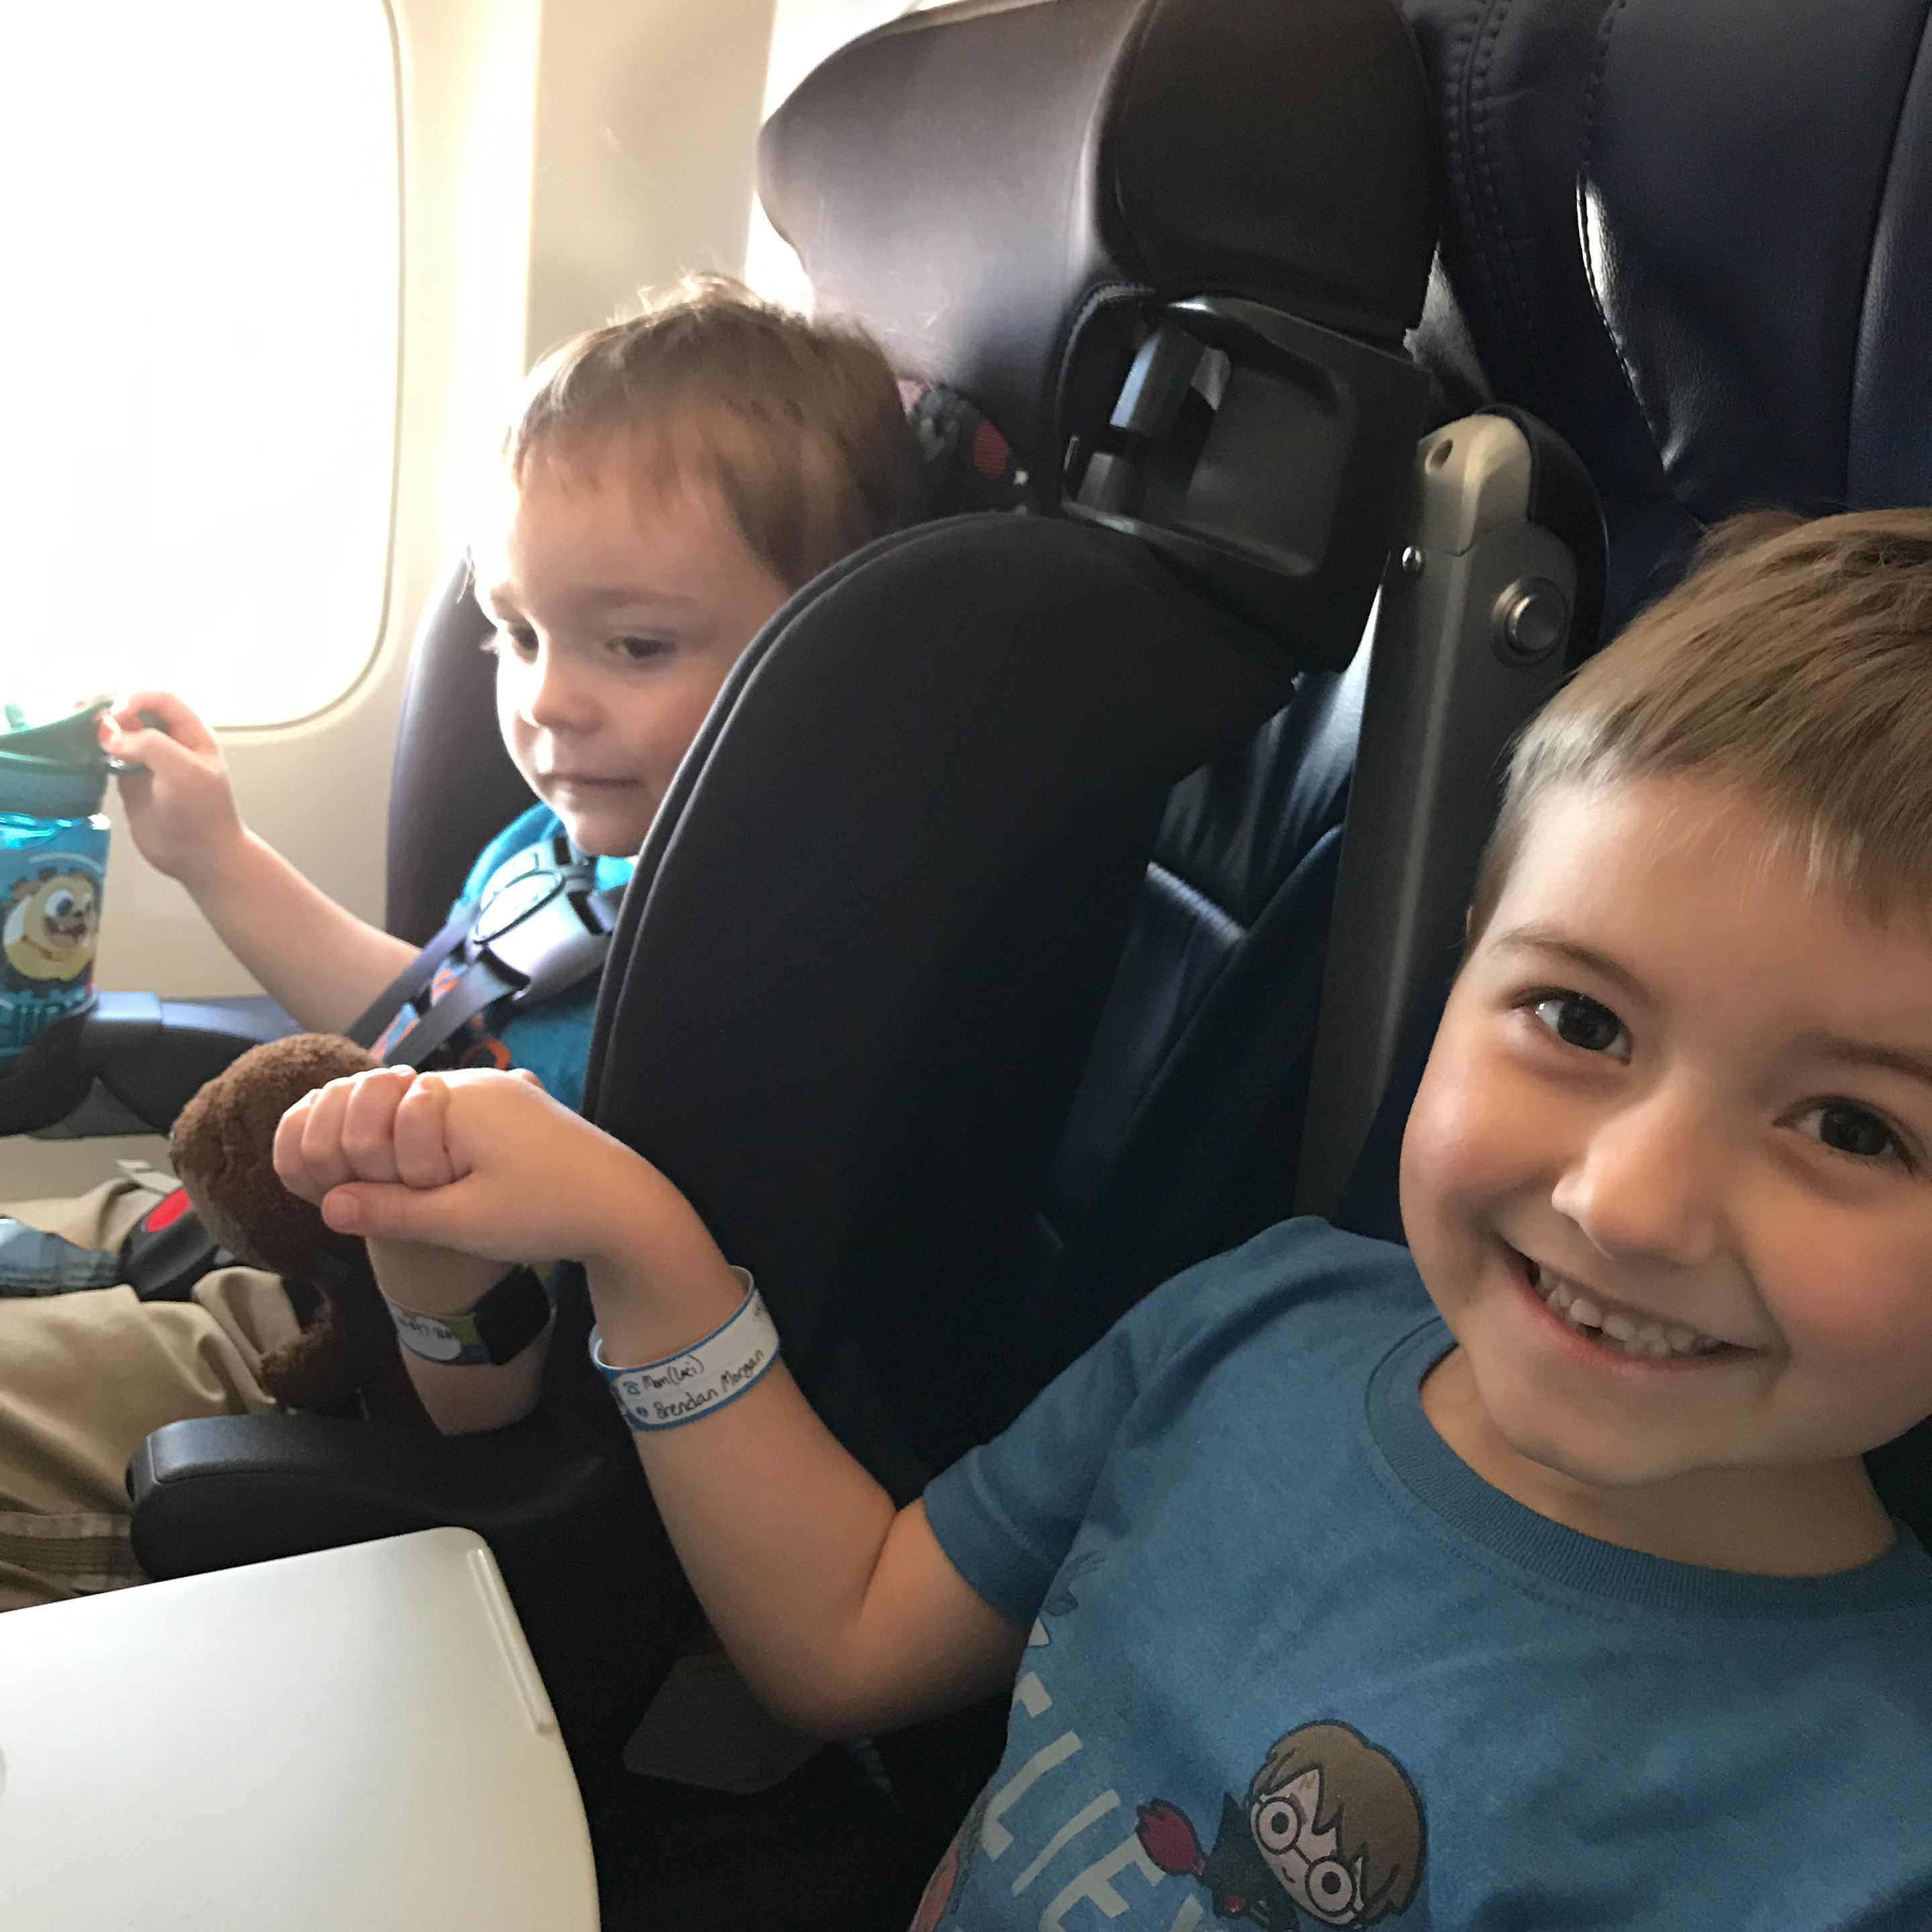 A kid holds his brother's hand on an airplane trip, flying with young kids